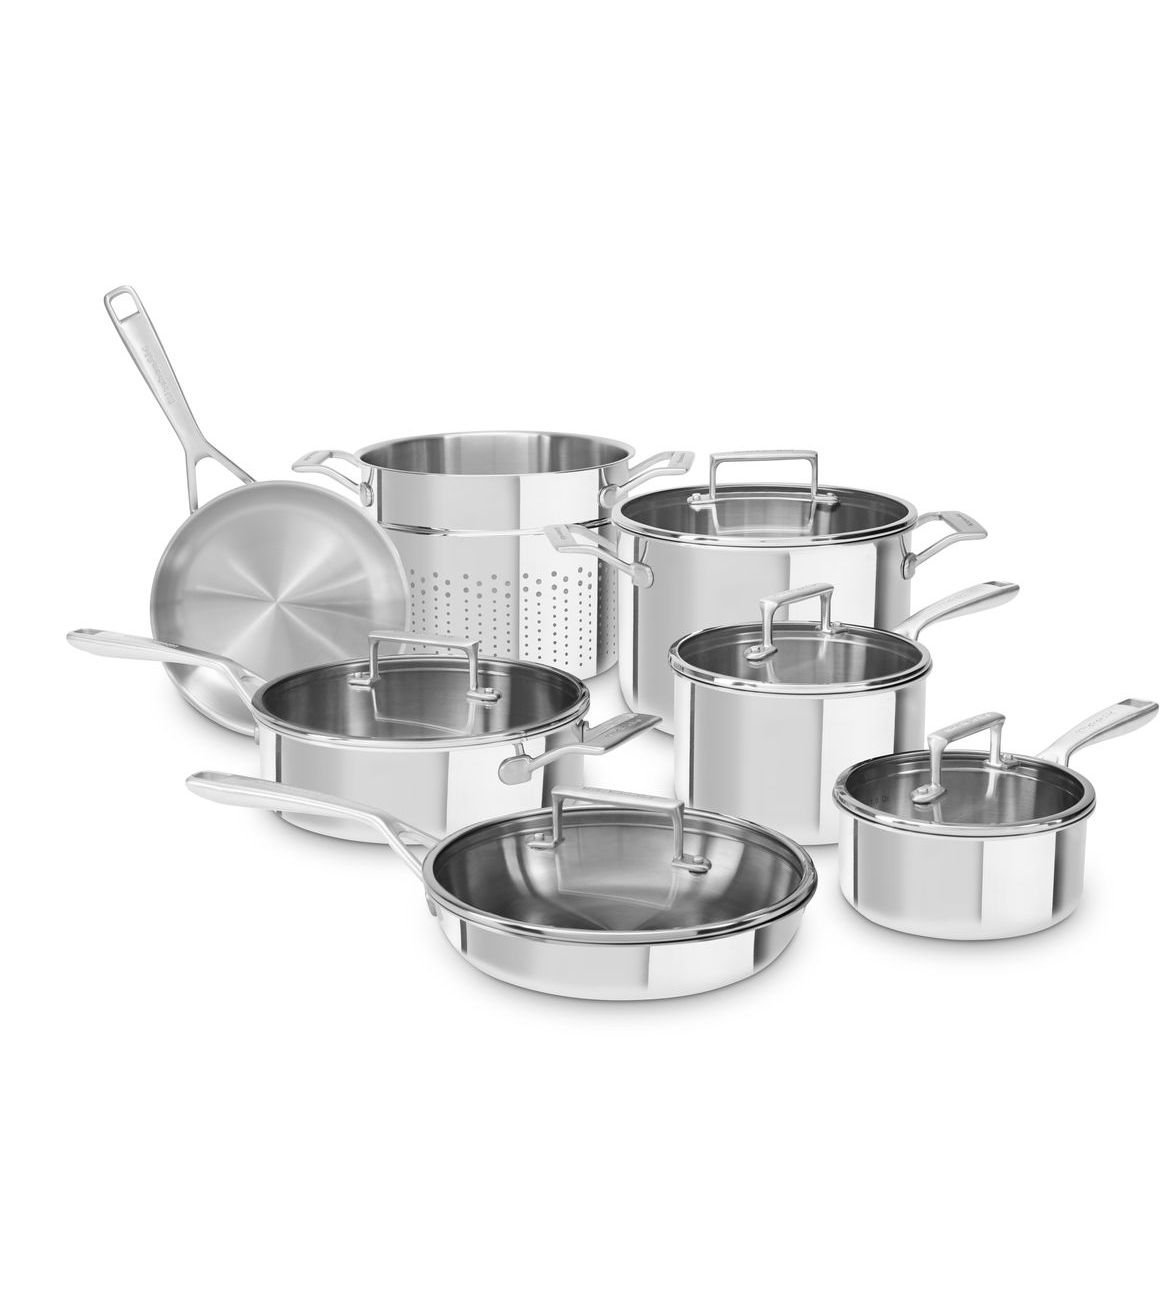 KitchenAid Tri-Ply 12pc Cookware Set